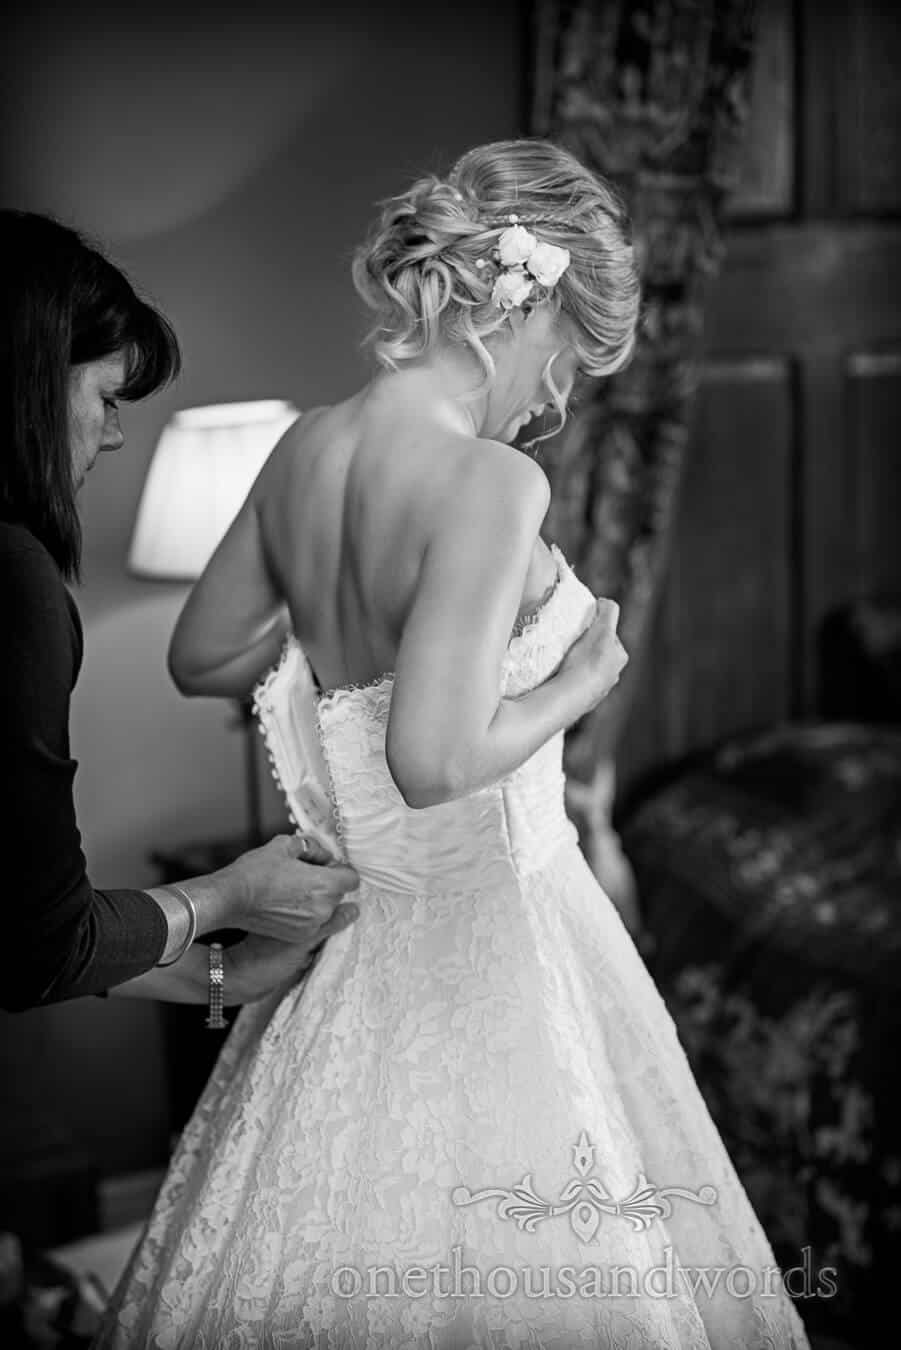 Black and white photograph of bride being zipped into white wedding dress